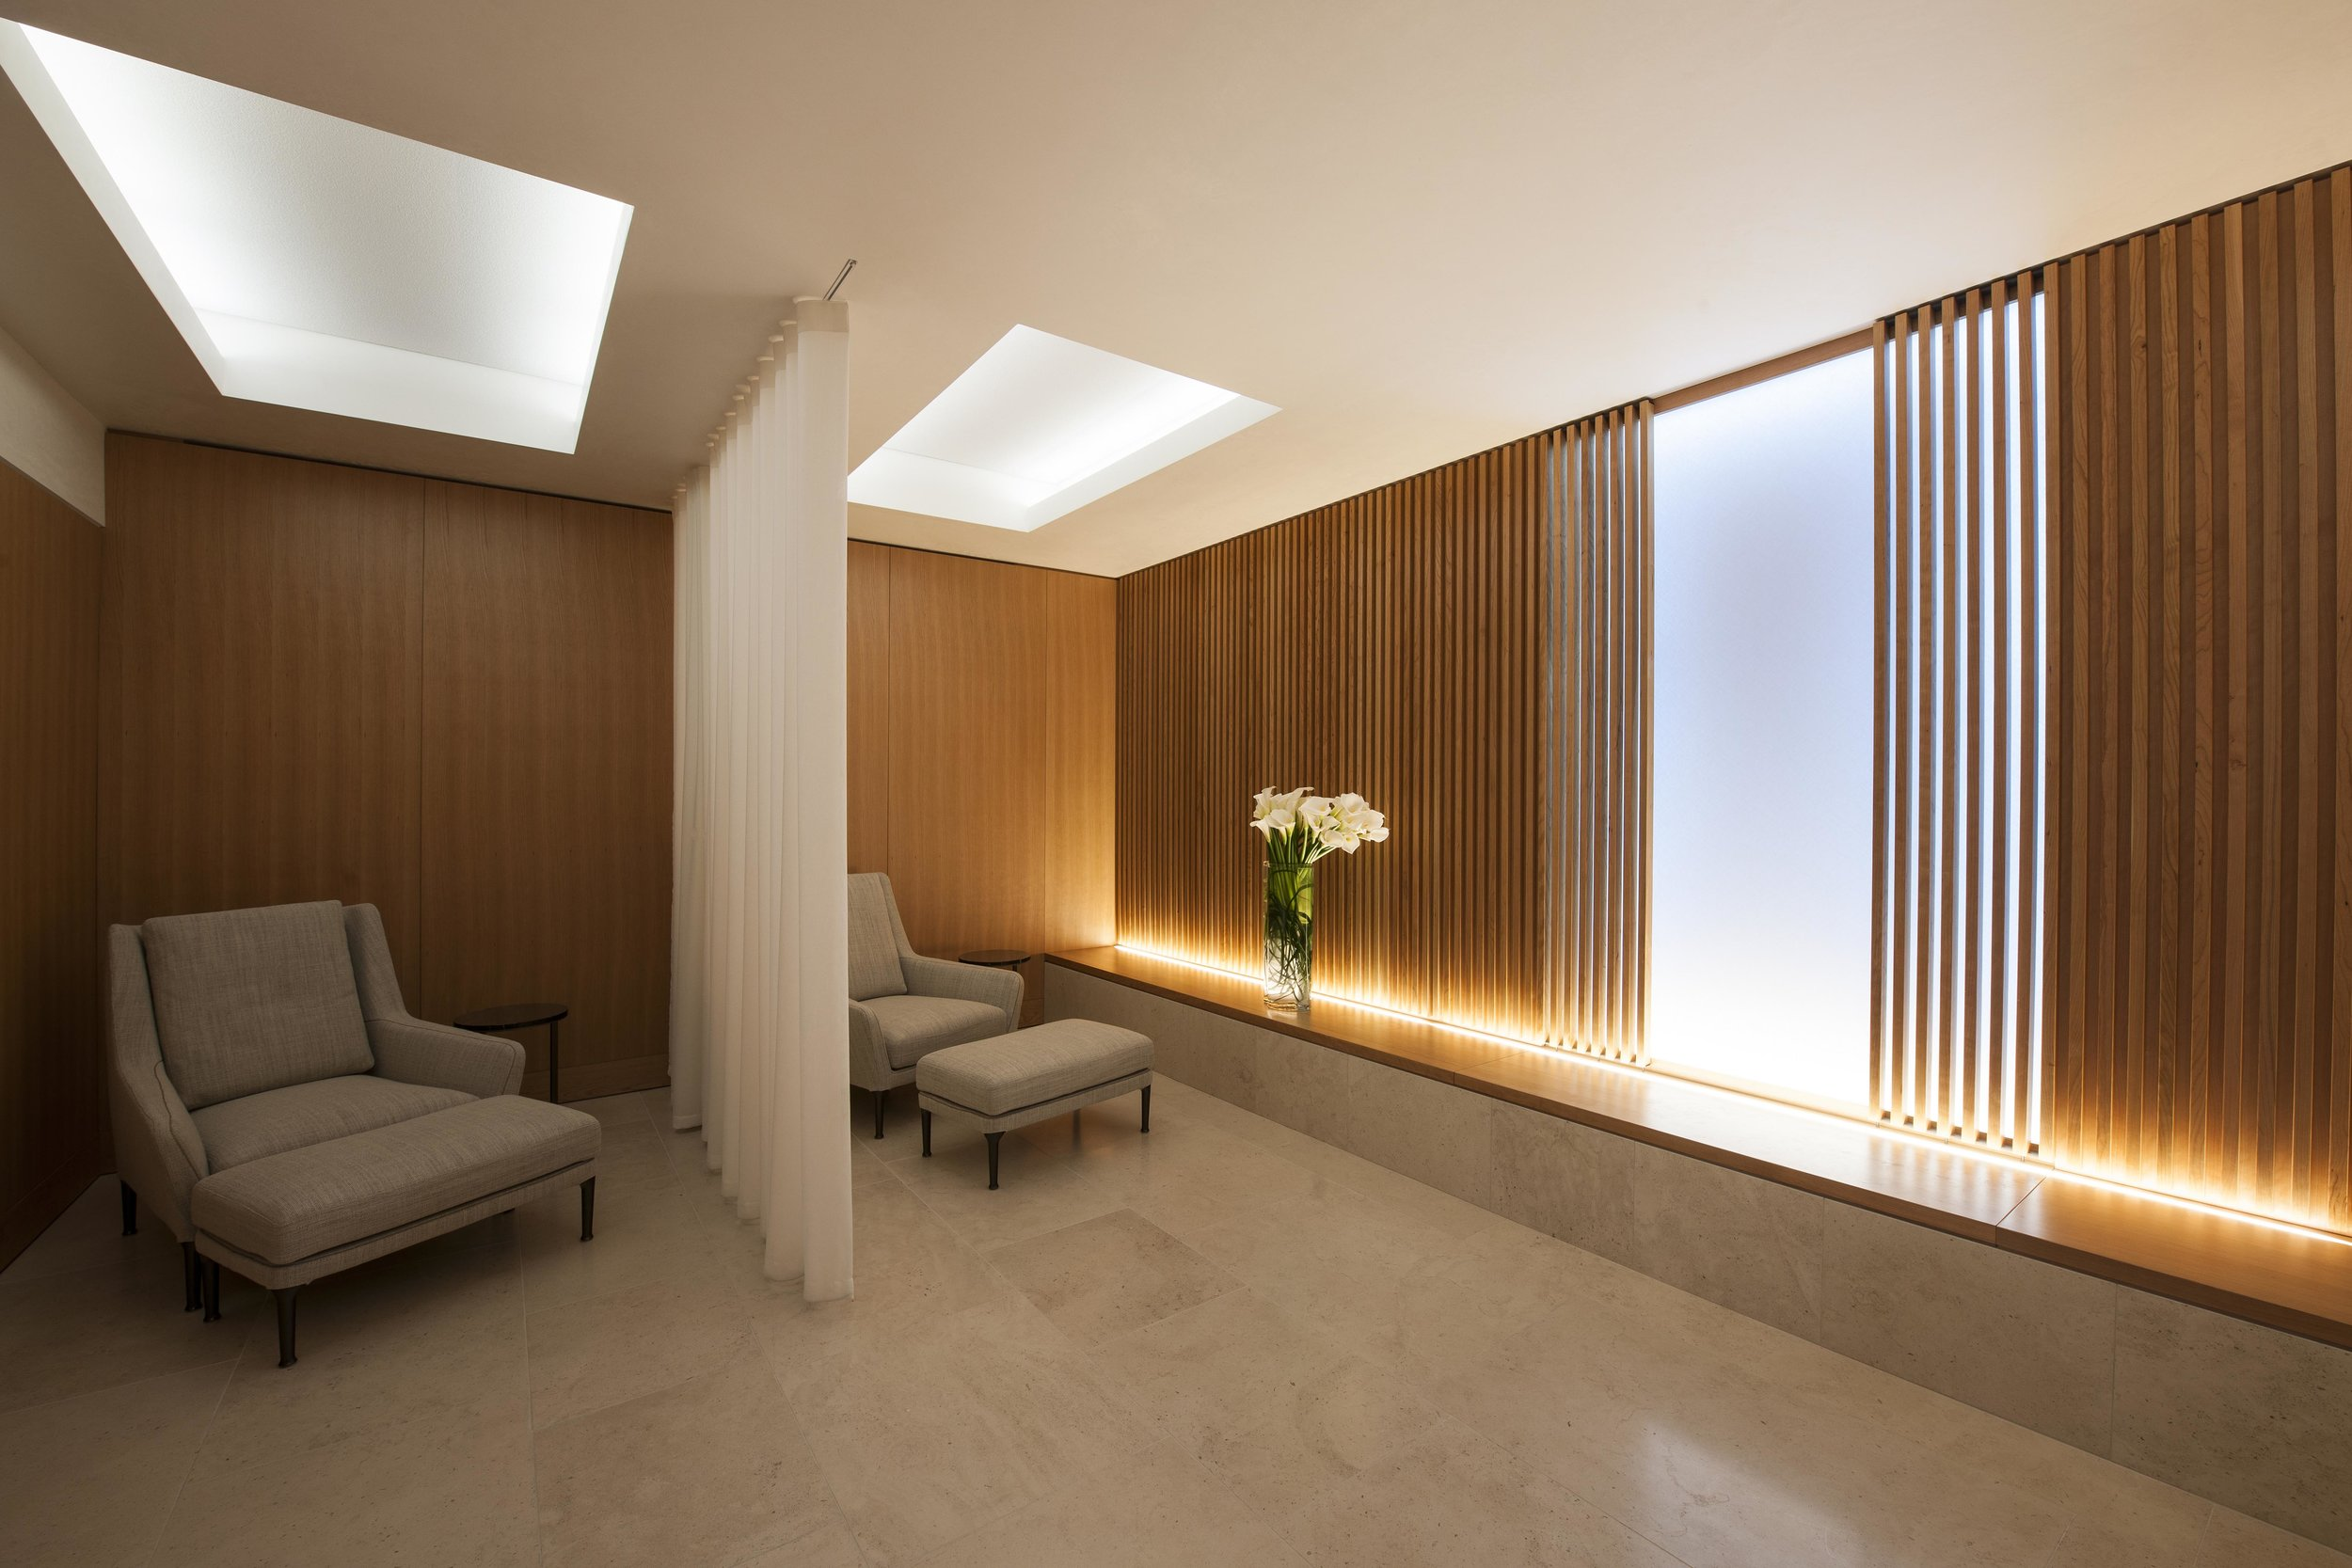 Harrods partnered with award winning architects Stanton Williams to create a calming space using natural cherry timber and moleanos stone. Harrods Interiors worked on a contemporary furniture scheme for the relaxation area and waiting area.